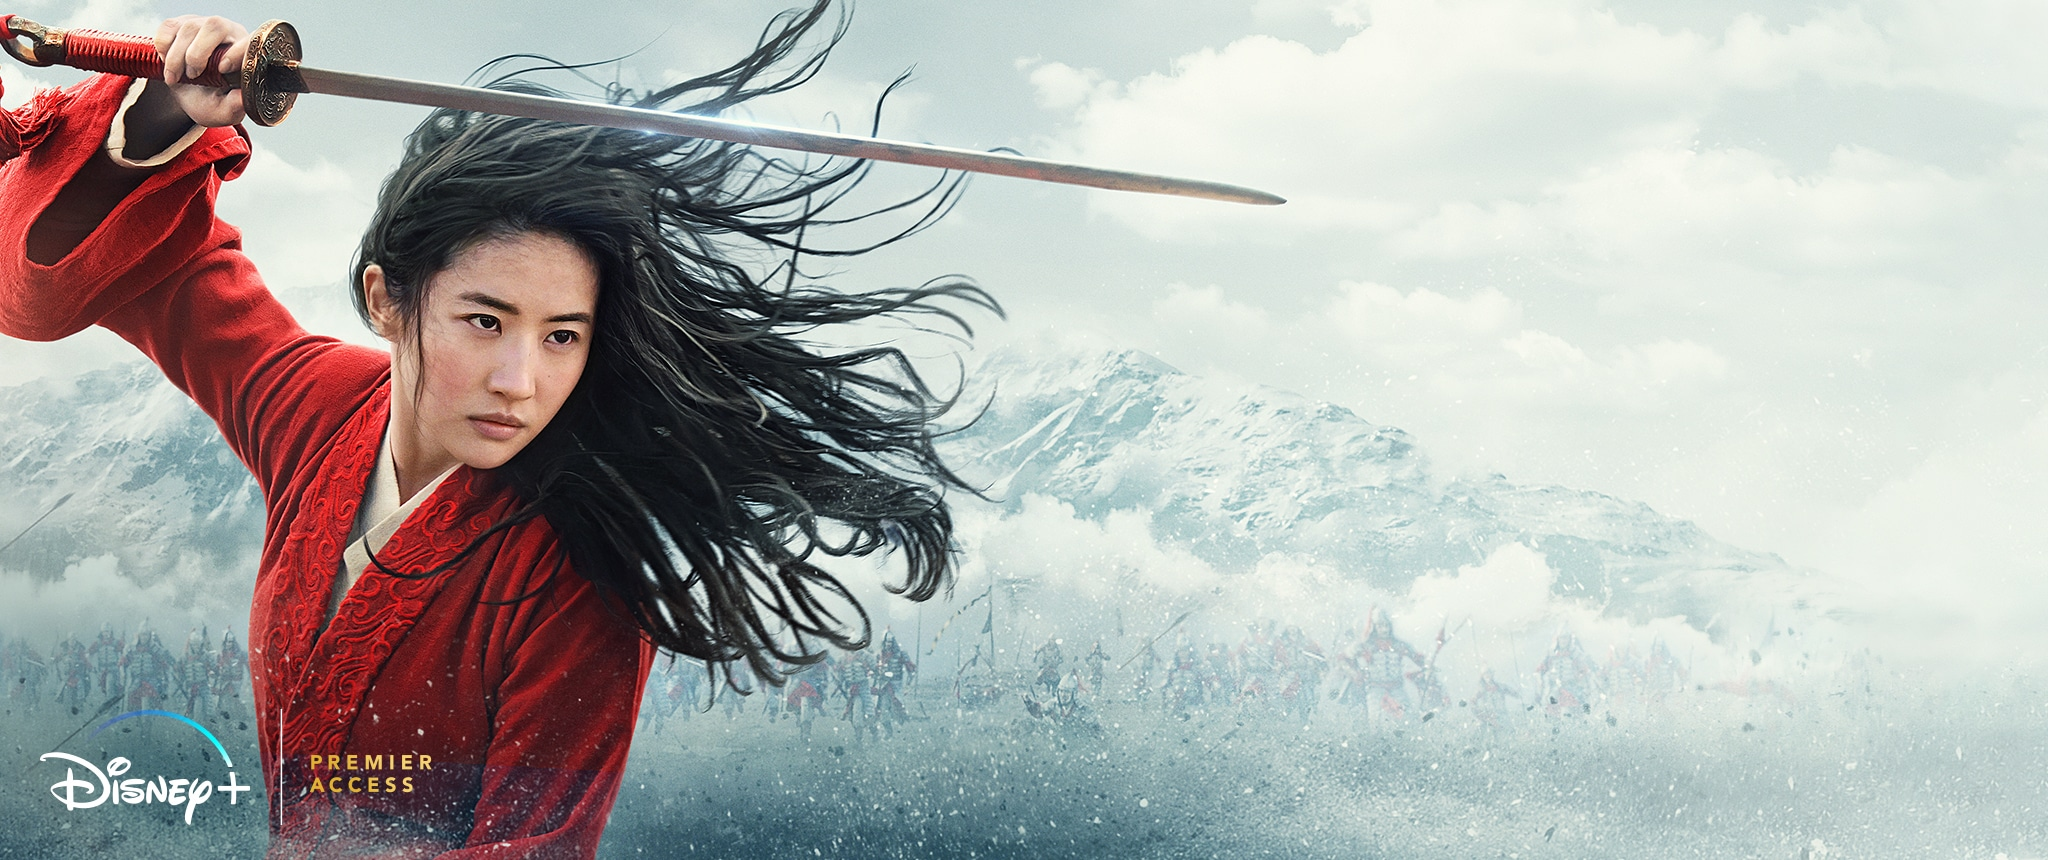 Hero - Disney+ - Mulan (2020) movie landing page **HOME ENT. NOW ON DIGITAL**